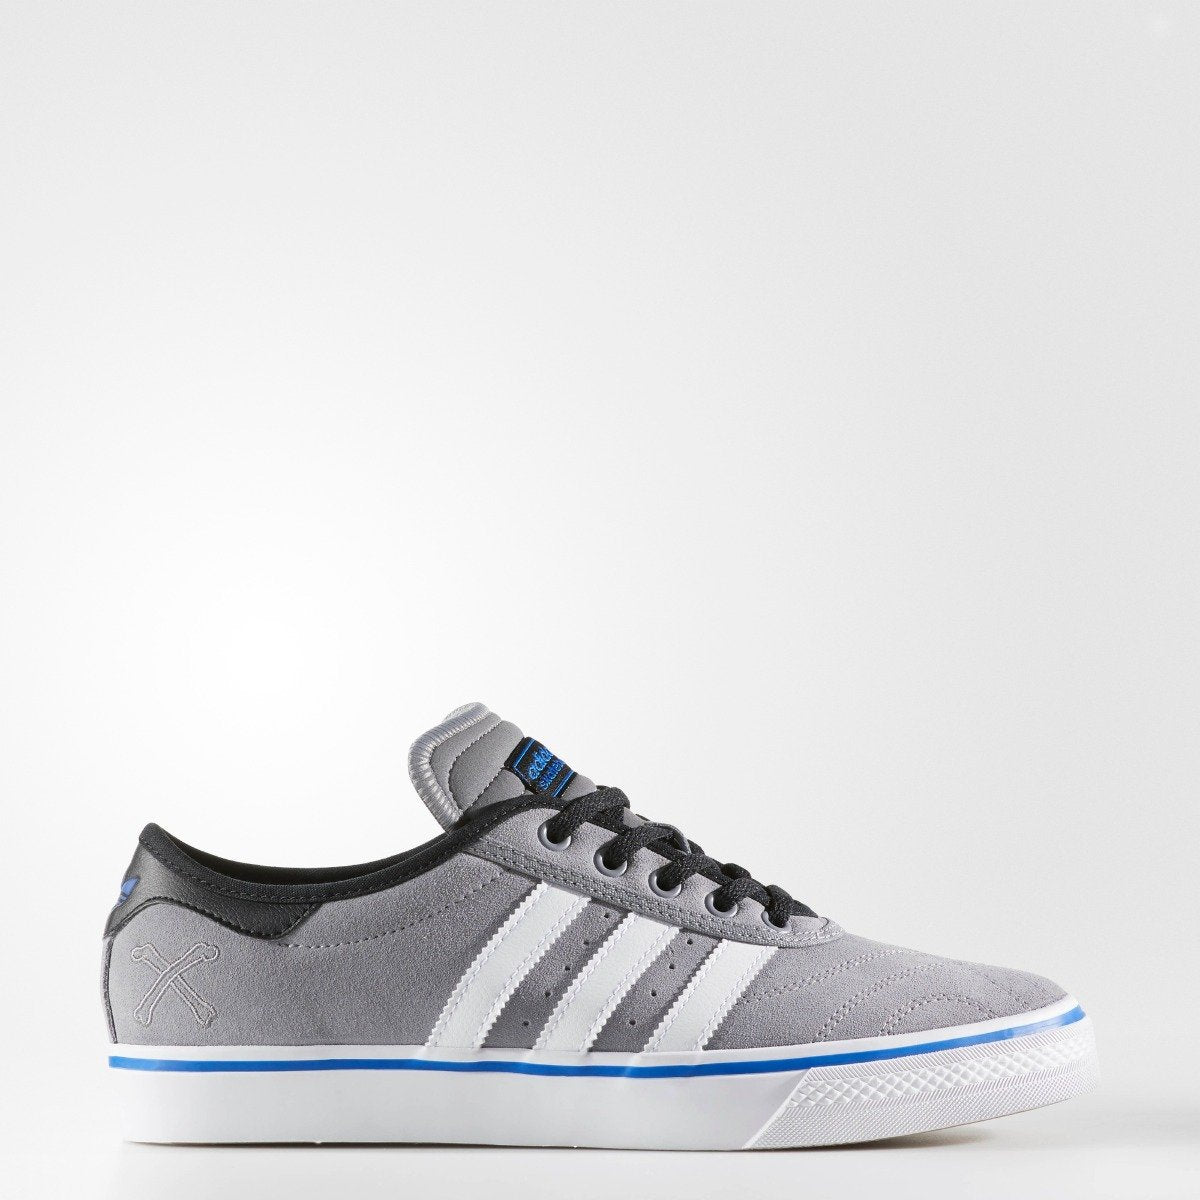 hot sale online e5b43 e68f2 Mens adidas Originals adiease Premiere ADV Shoes Grey with White and Blue